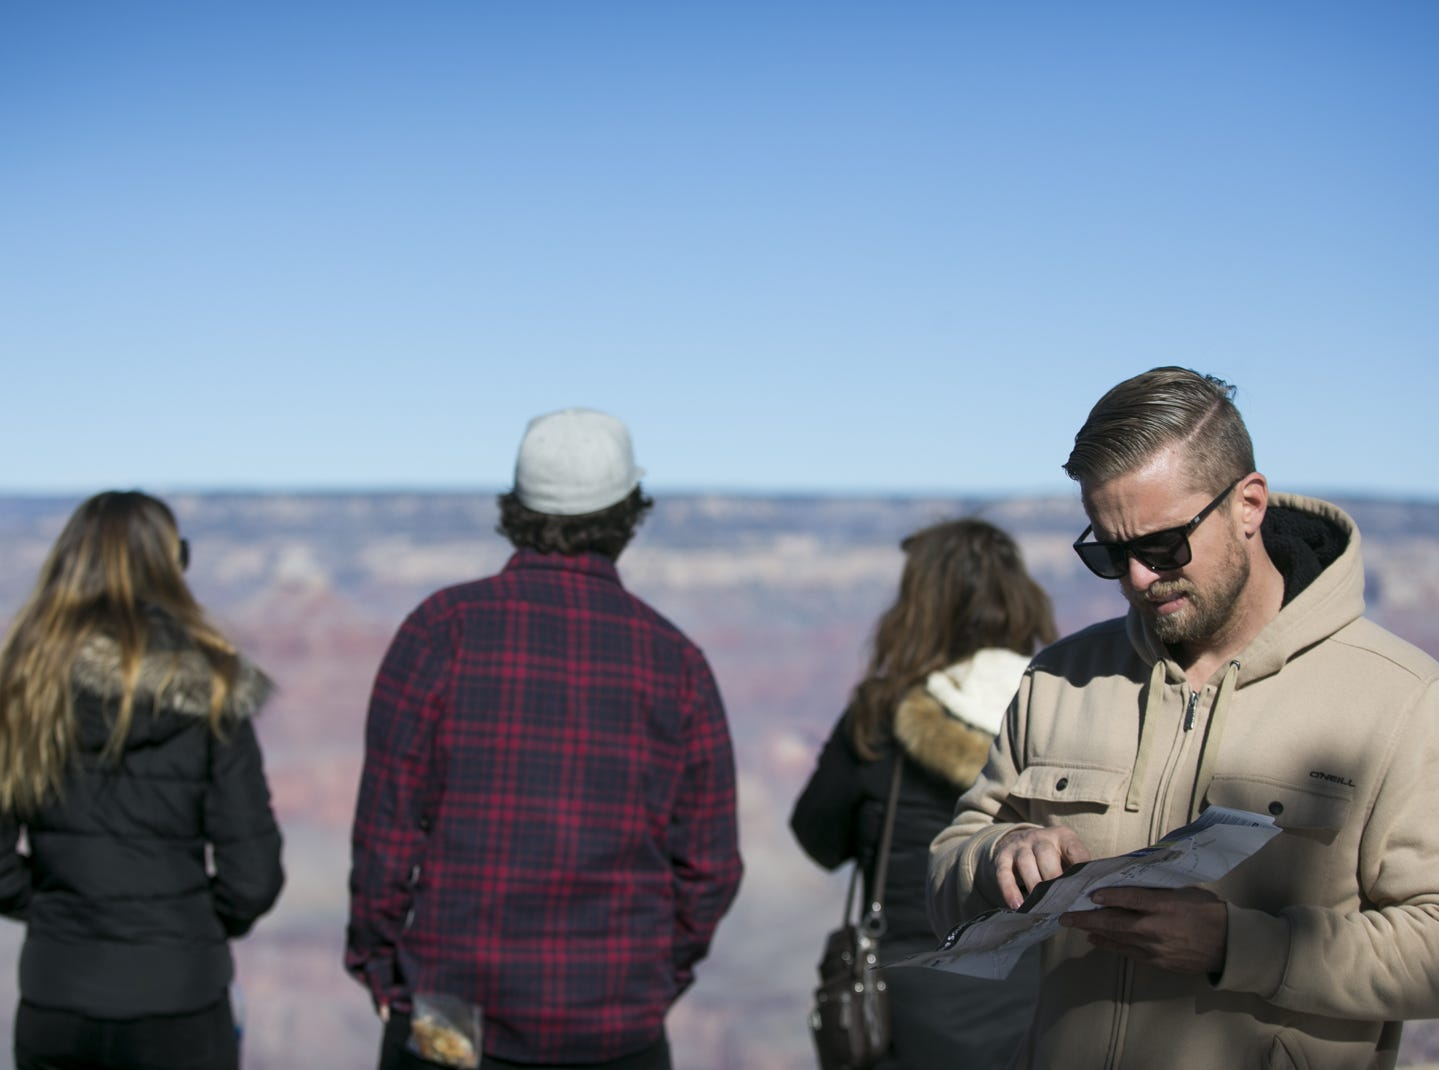 Collin Murphy (right) from Orange County, California, looks at a map of Grand Canyon National Park on Jan. 4, 2019. The park was staffed at minimum capacity due to the government shutdown but retained much of its services due to an executive order issued by Arizona Gov. Doug Ducey to run the park with state funds in the event of a shutdown.